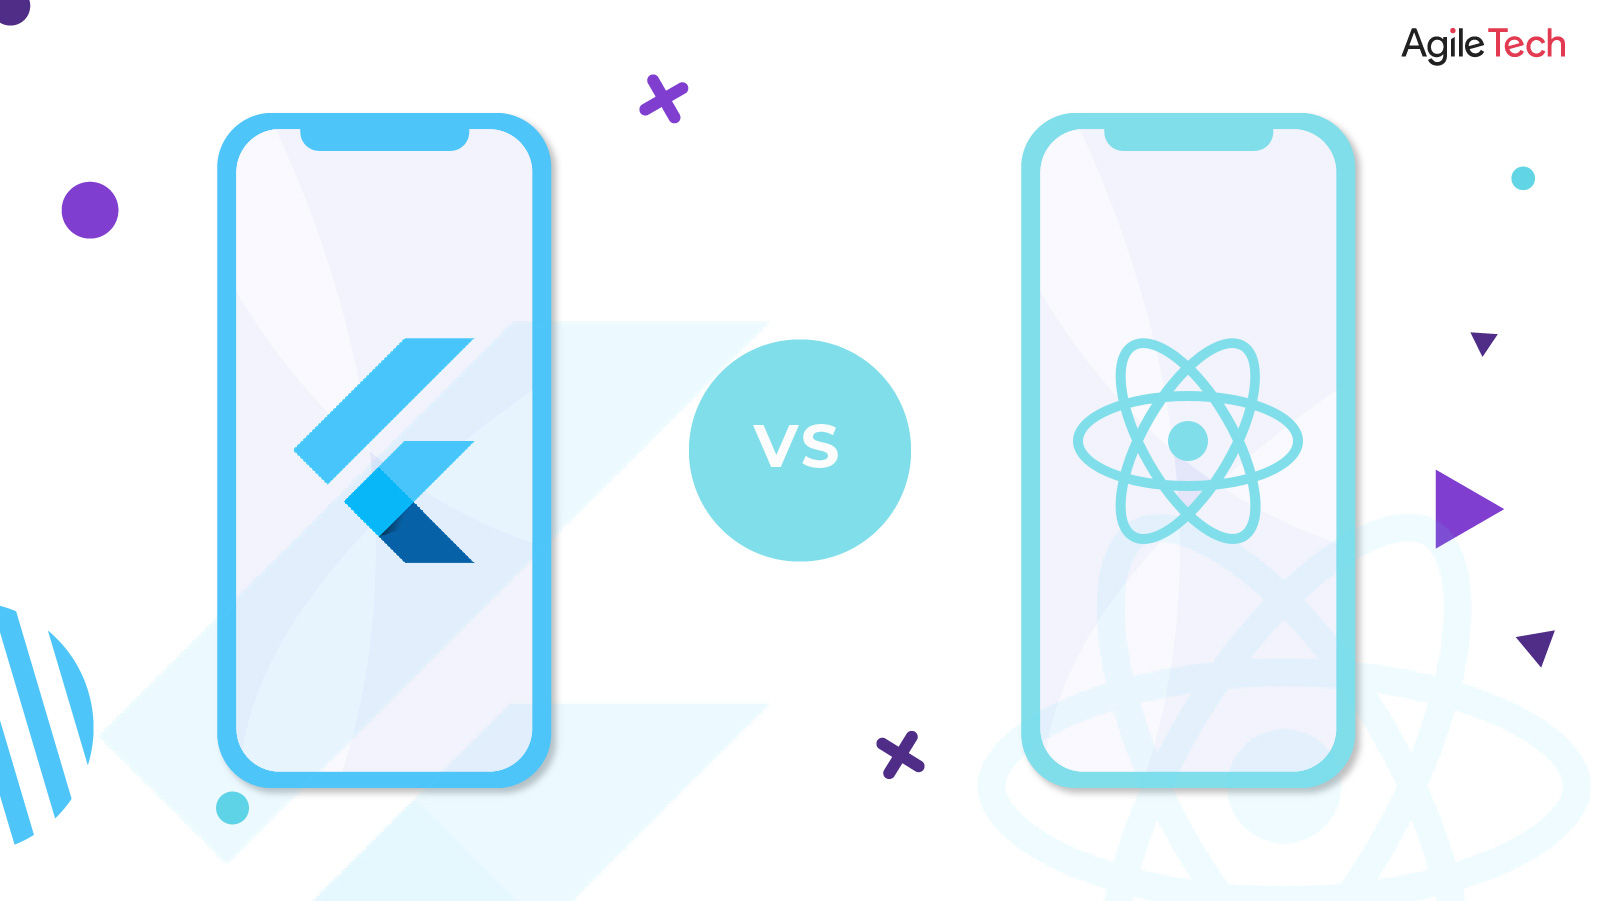 flutter, react native, flutter vs react native which one is better for your business?, agiletech